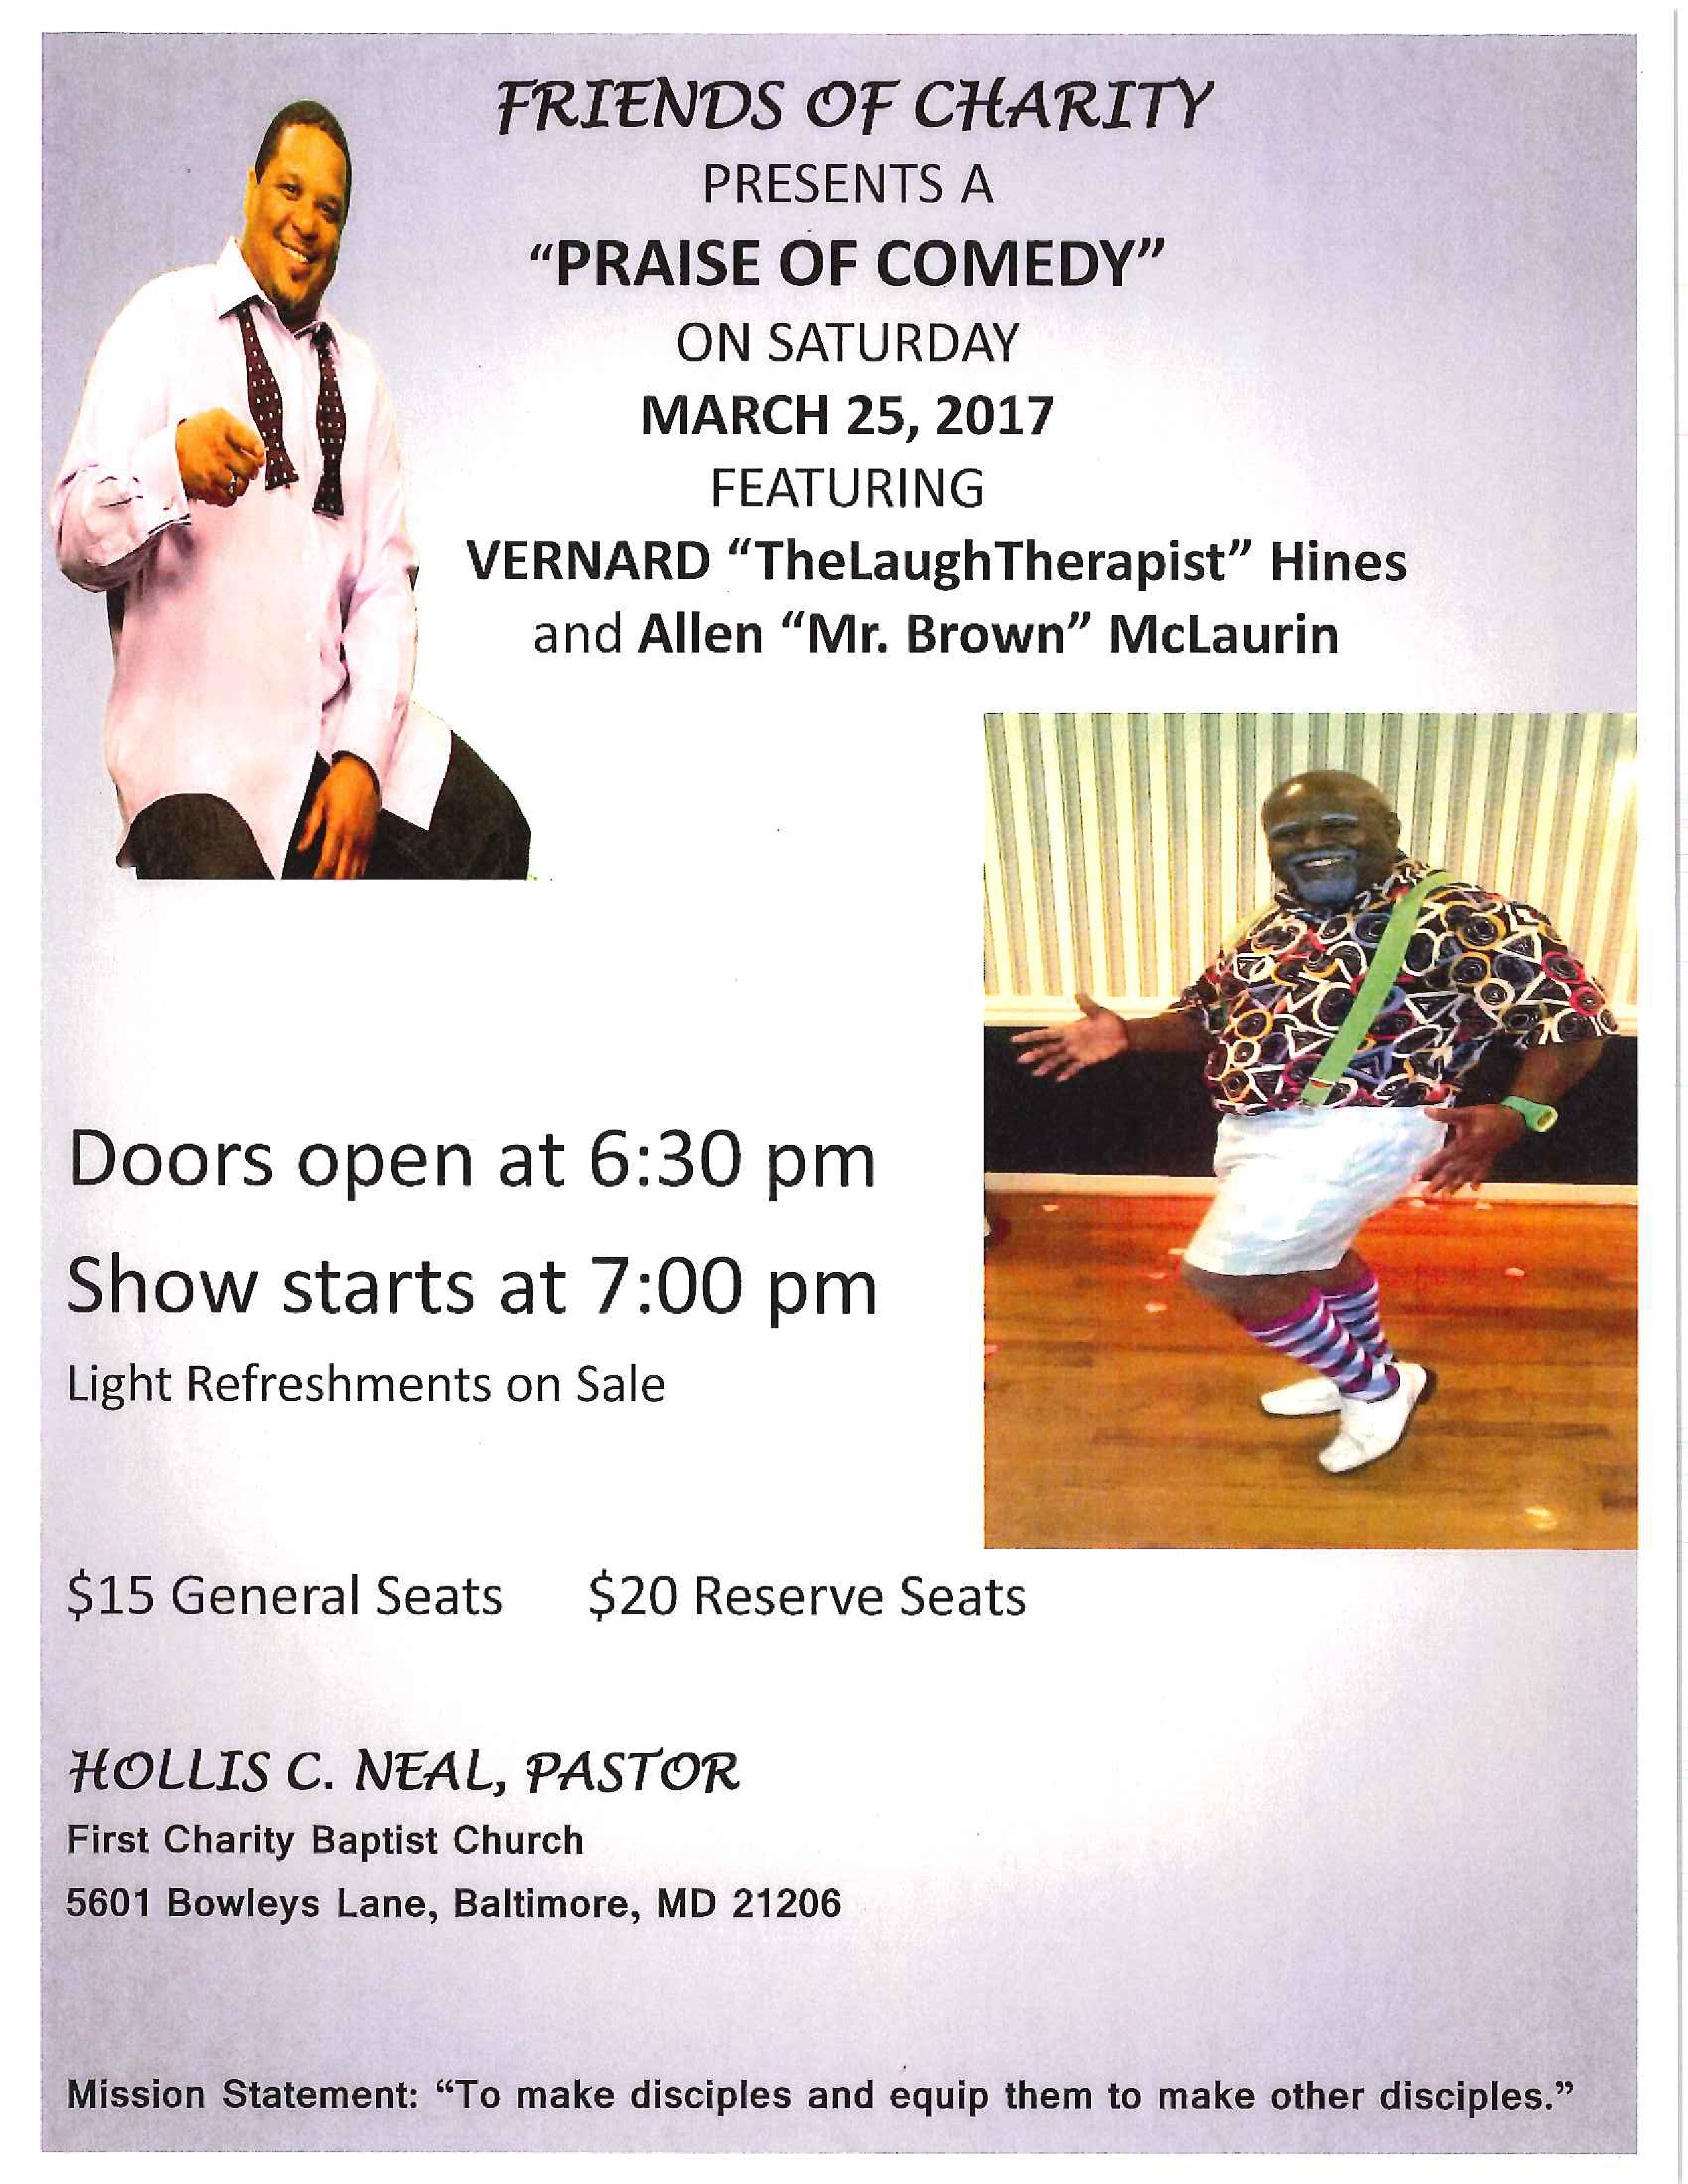 Praise of Comedy Flyer 3.25.17